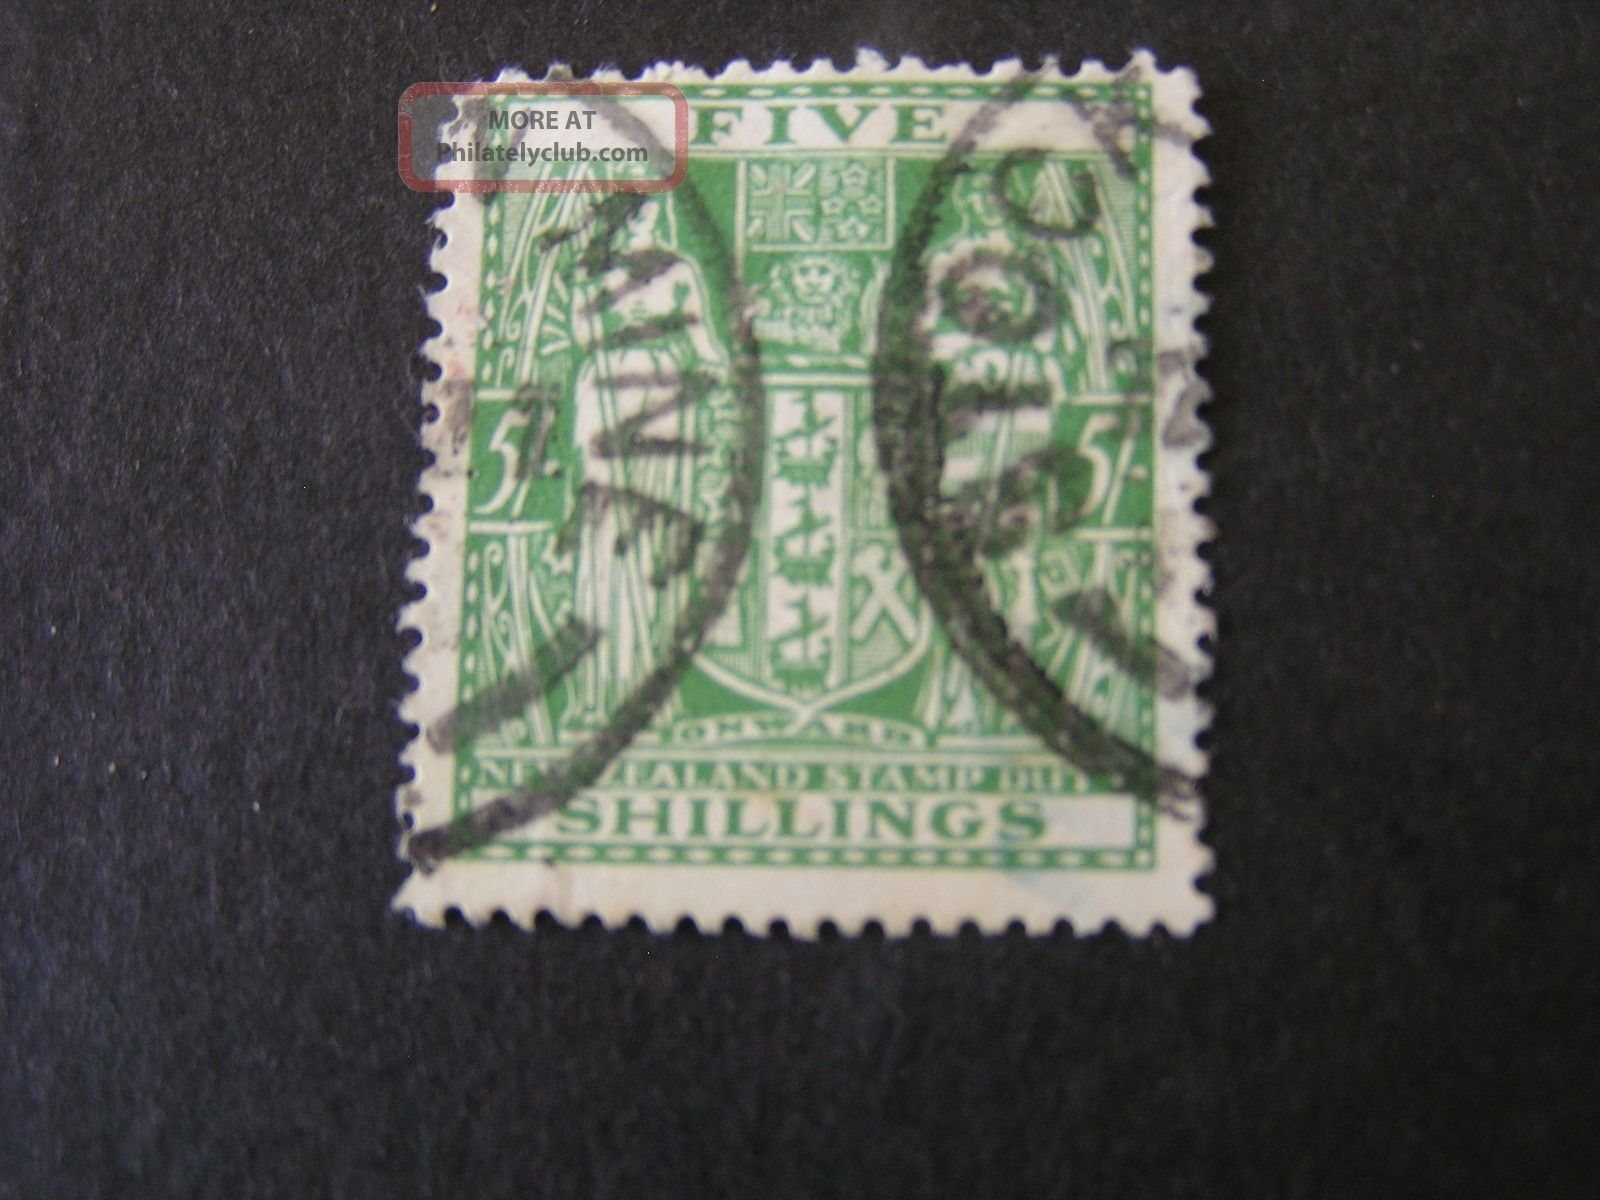 Zealand,  Scott Ar - 50 5/ - Value 1931 - 39 Issue Postal - Fiscal Australia & Oceania photo